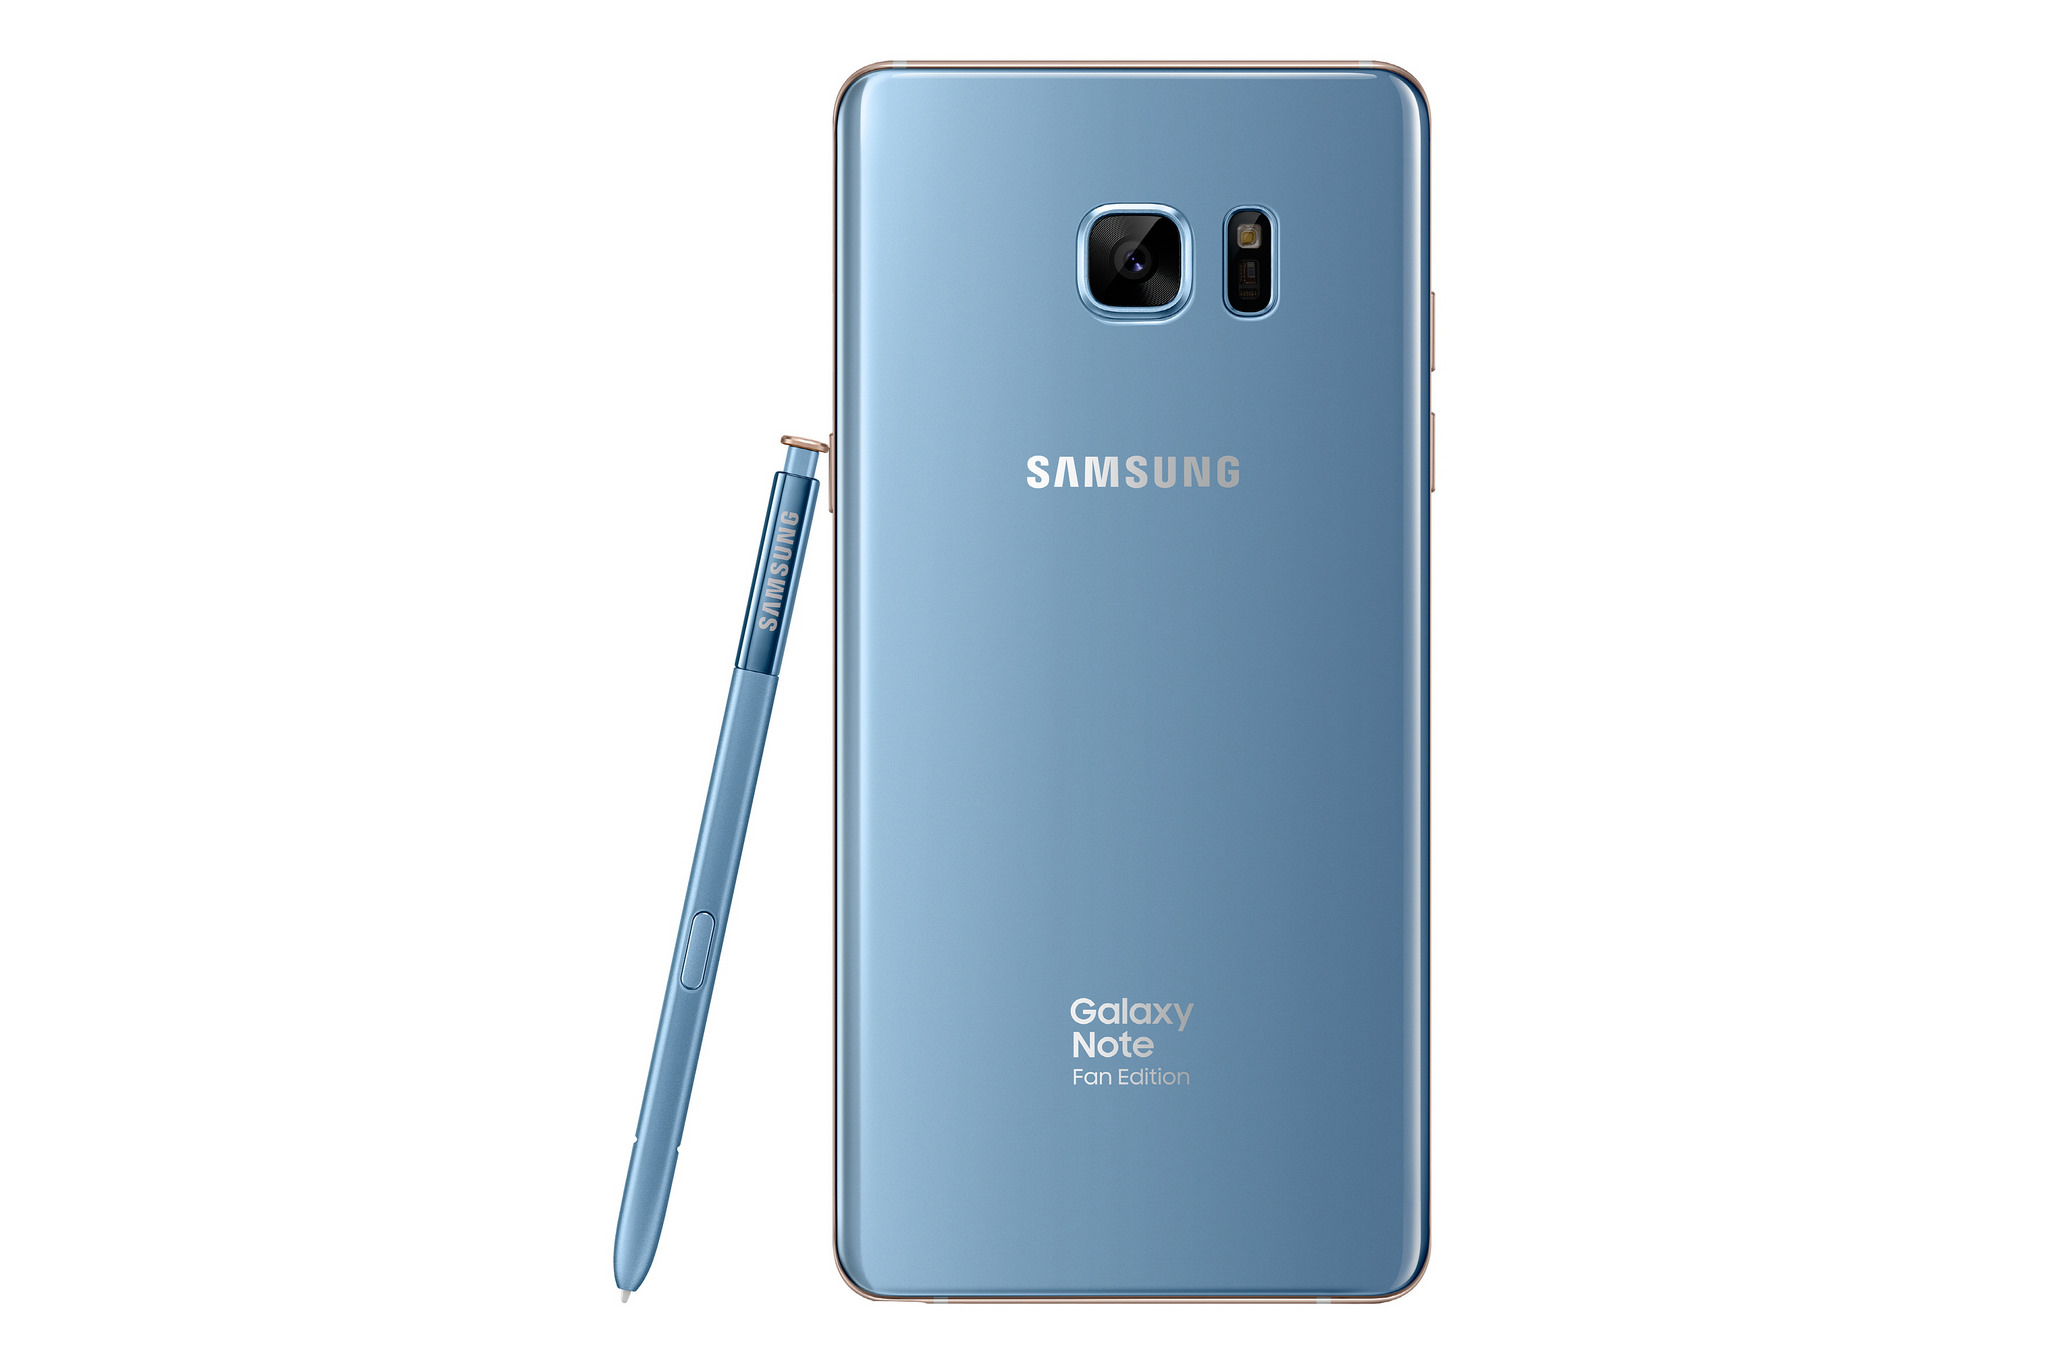 Galaxy Note Fan Edition FE Note 7 3